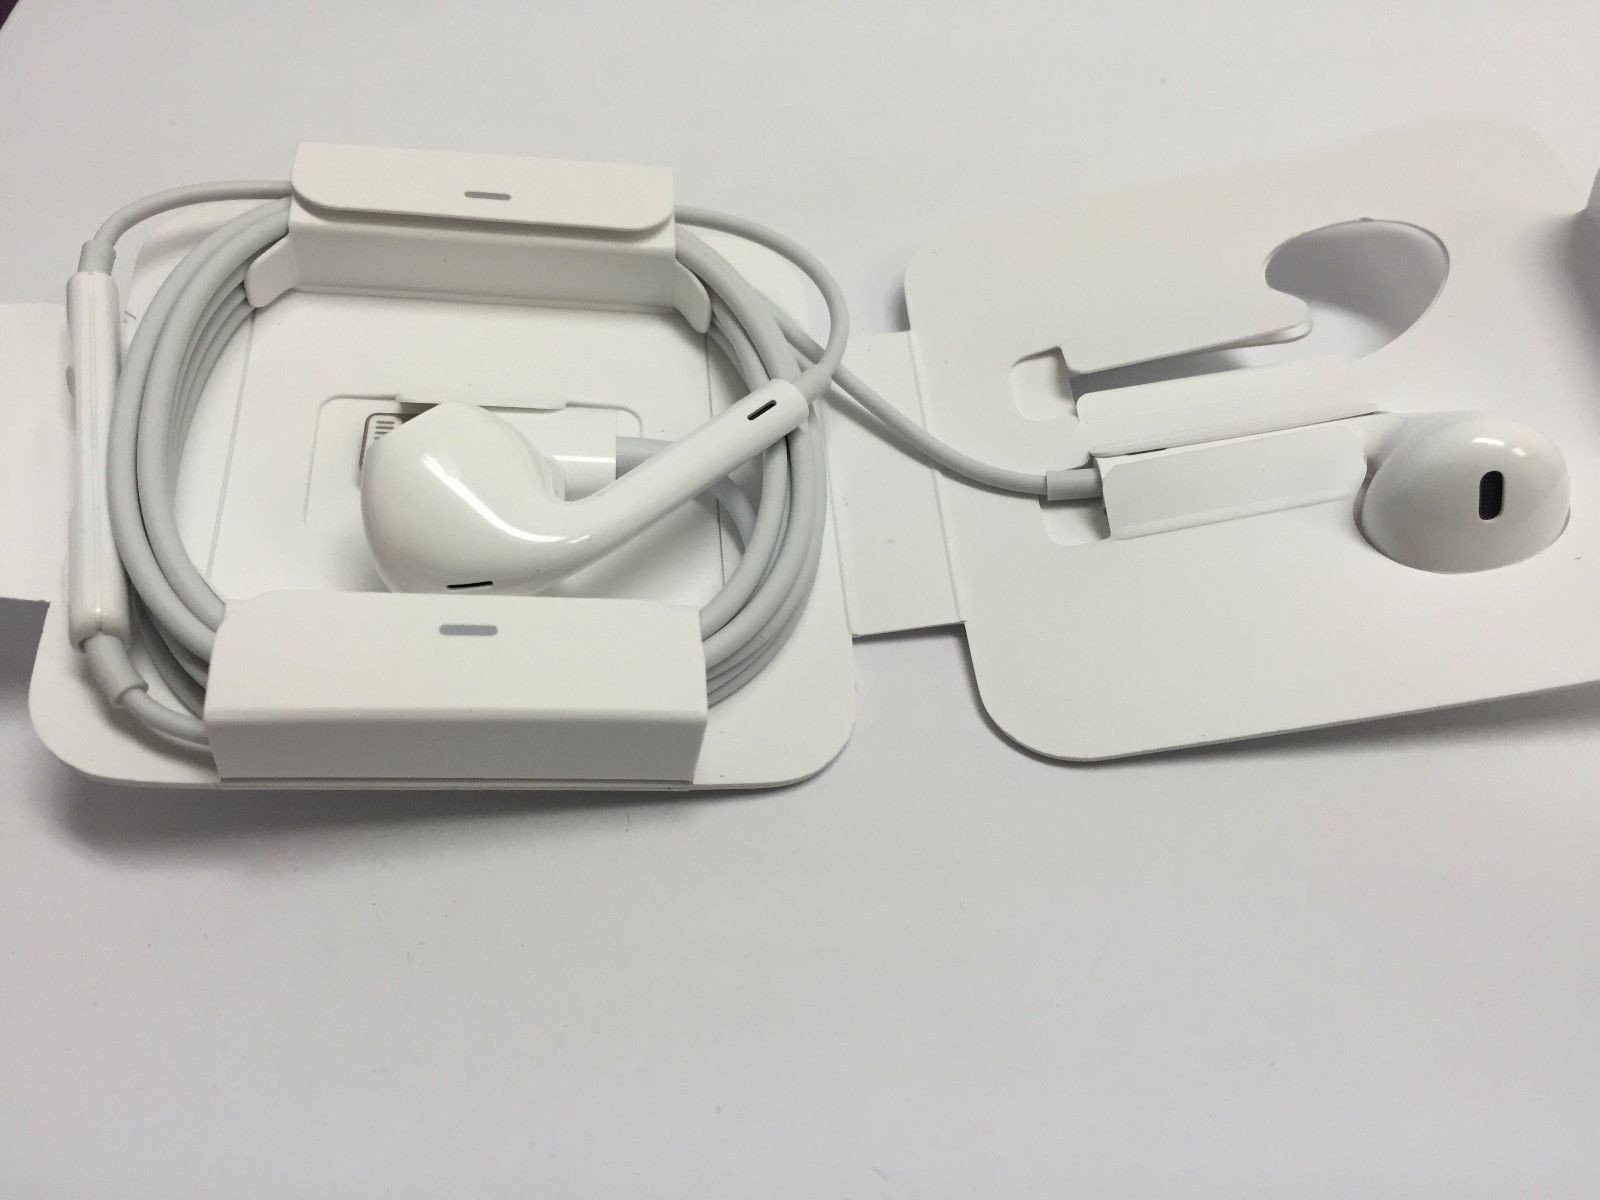 Earpods With Lightning Connector (10)